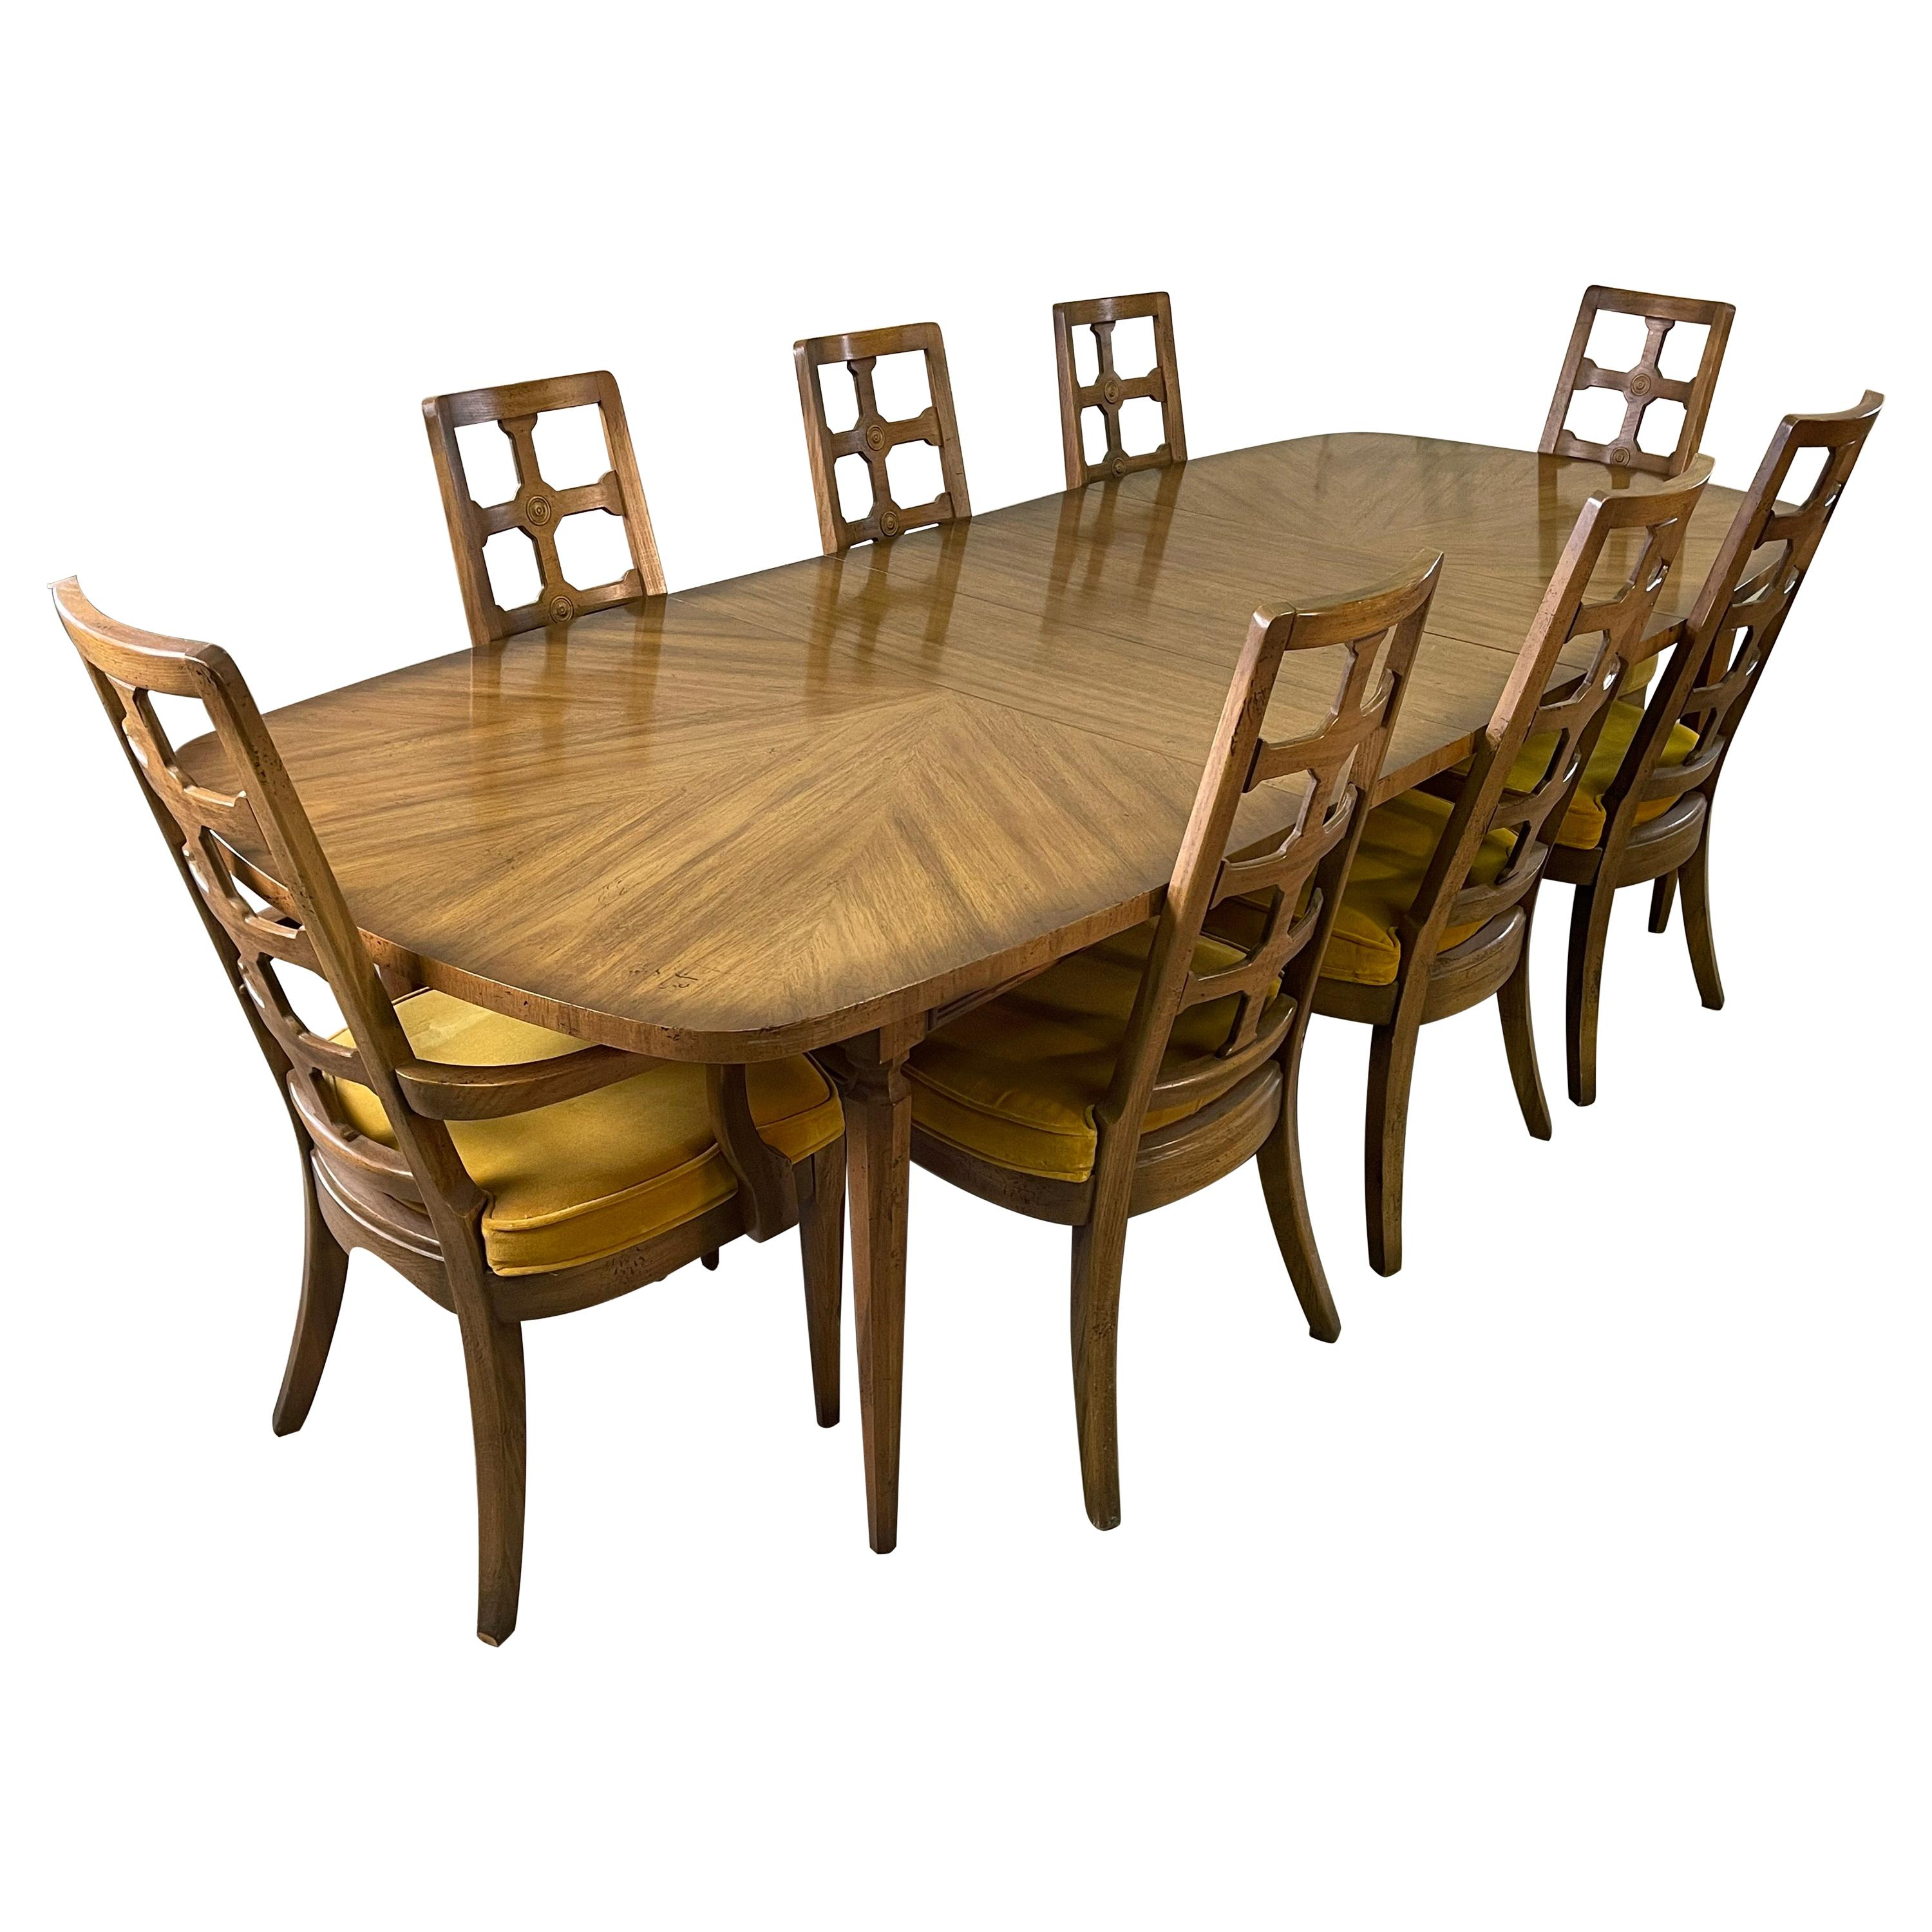 1960s Dining Table with 8 Chairs